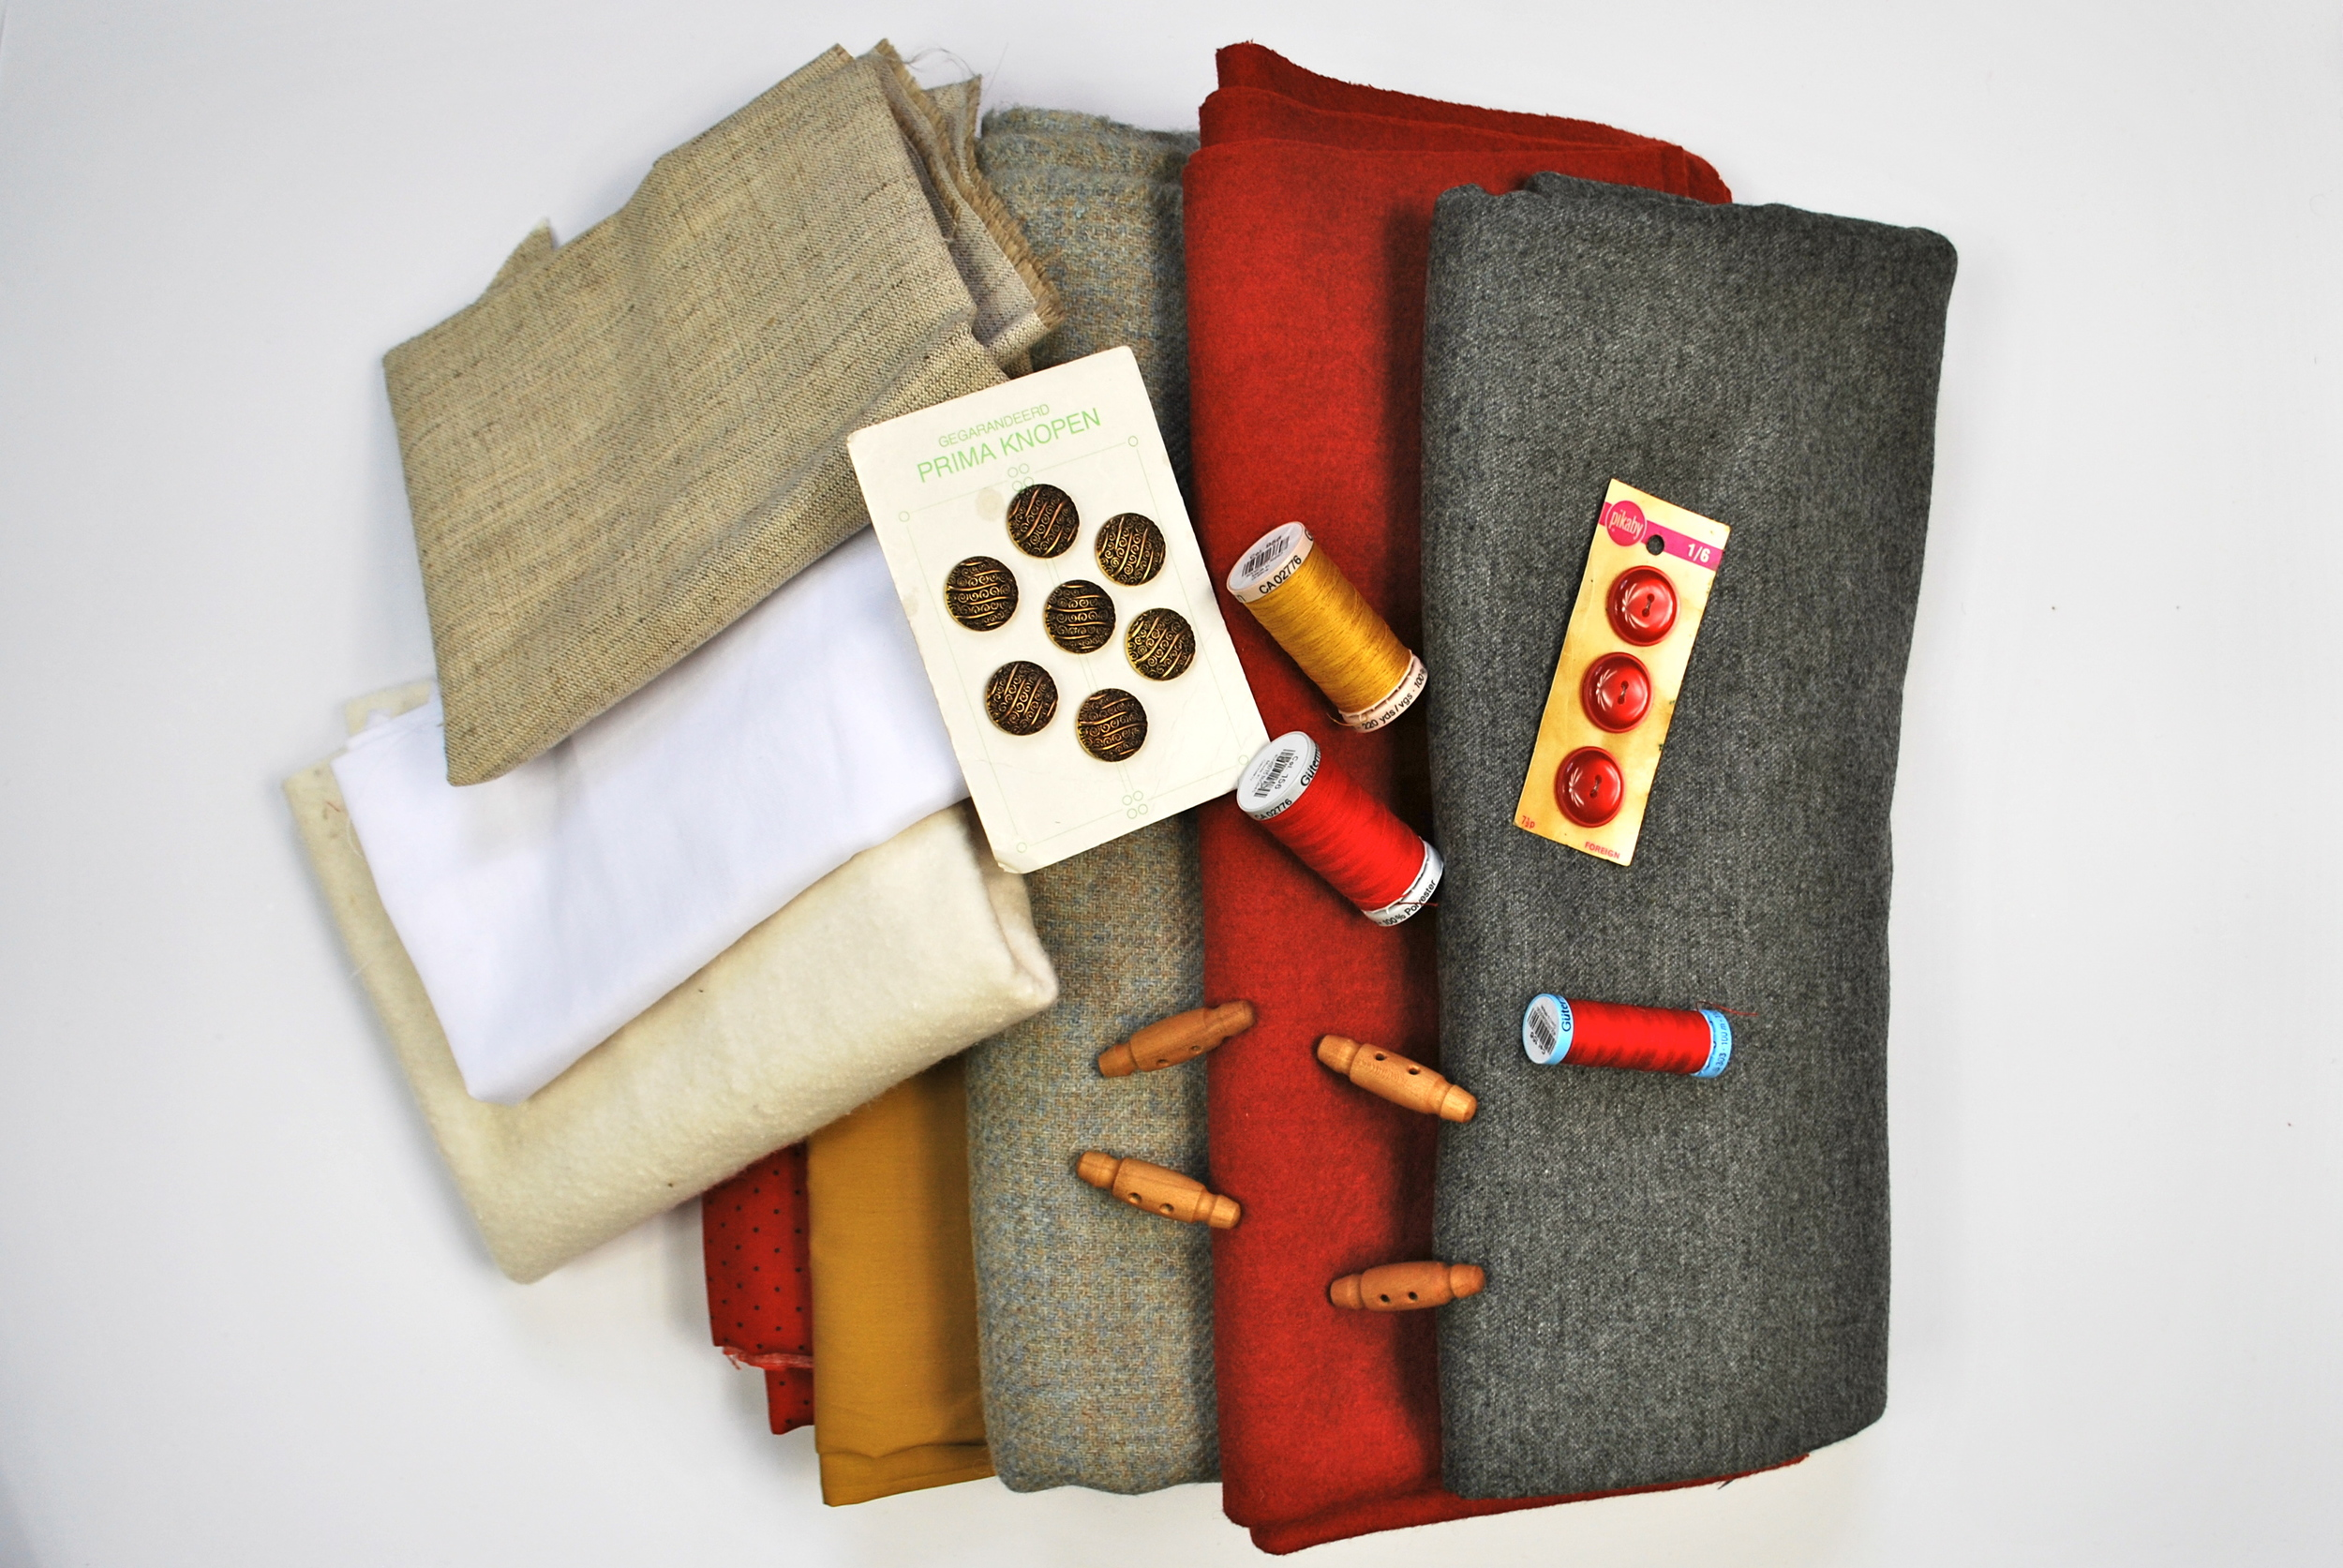 Fabrics suitable for jacket/coat construction, plus some buttons, toggles and Gutermann Thread.